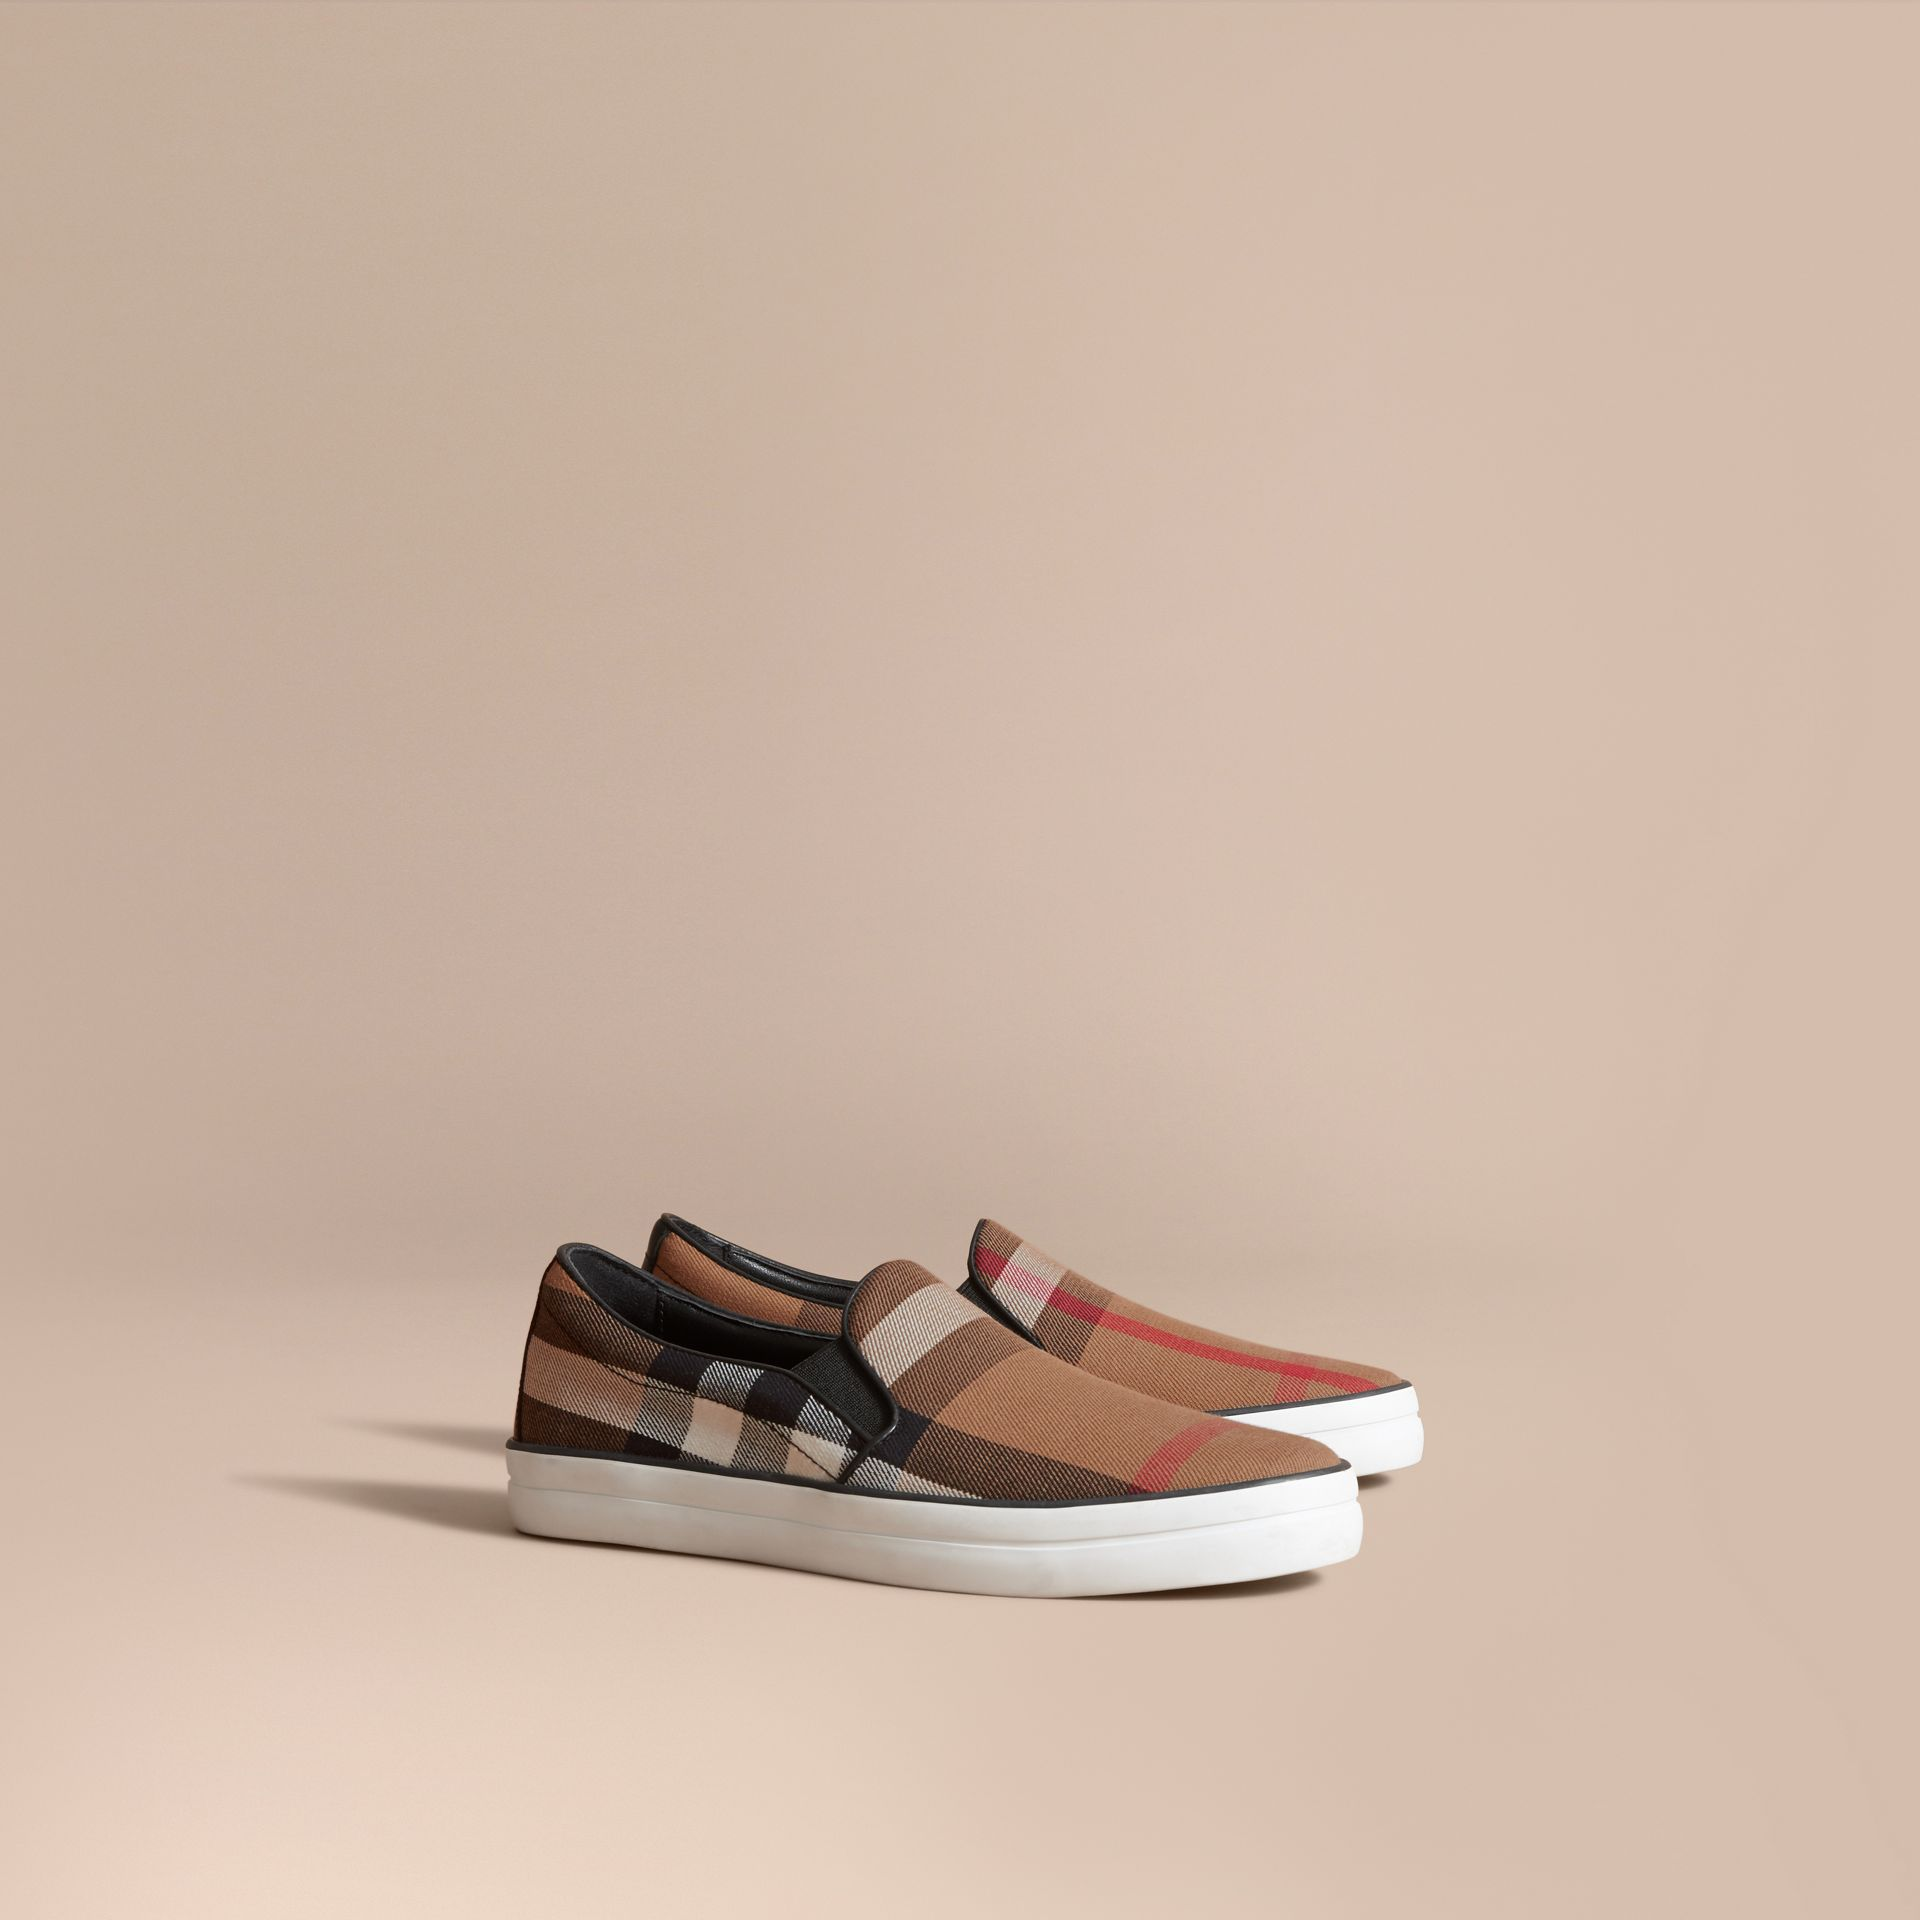 House Check Cotton and Leather Slip-on Trainers in Classic - Women | Burberry Canada - gallery image 1